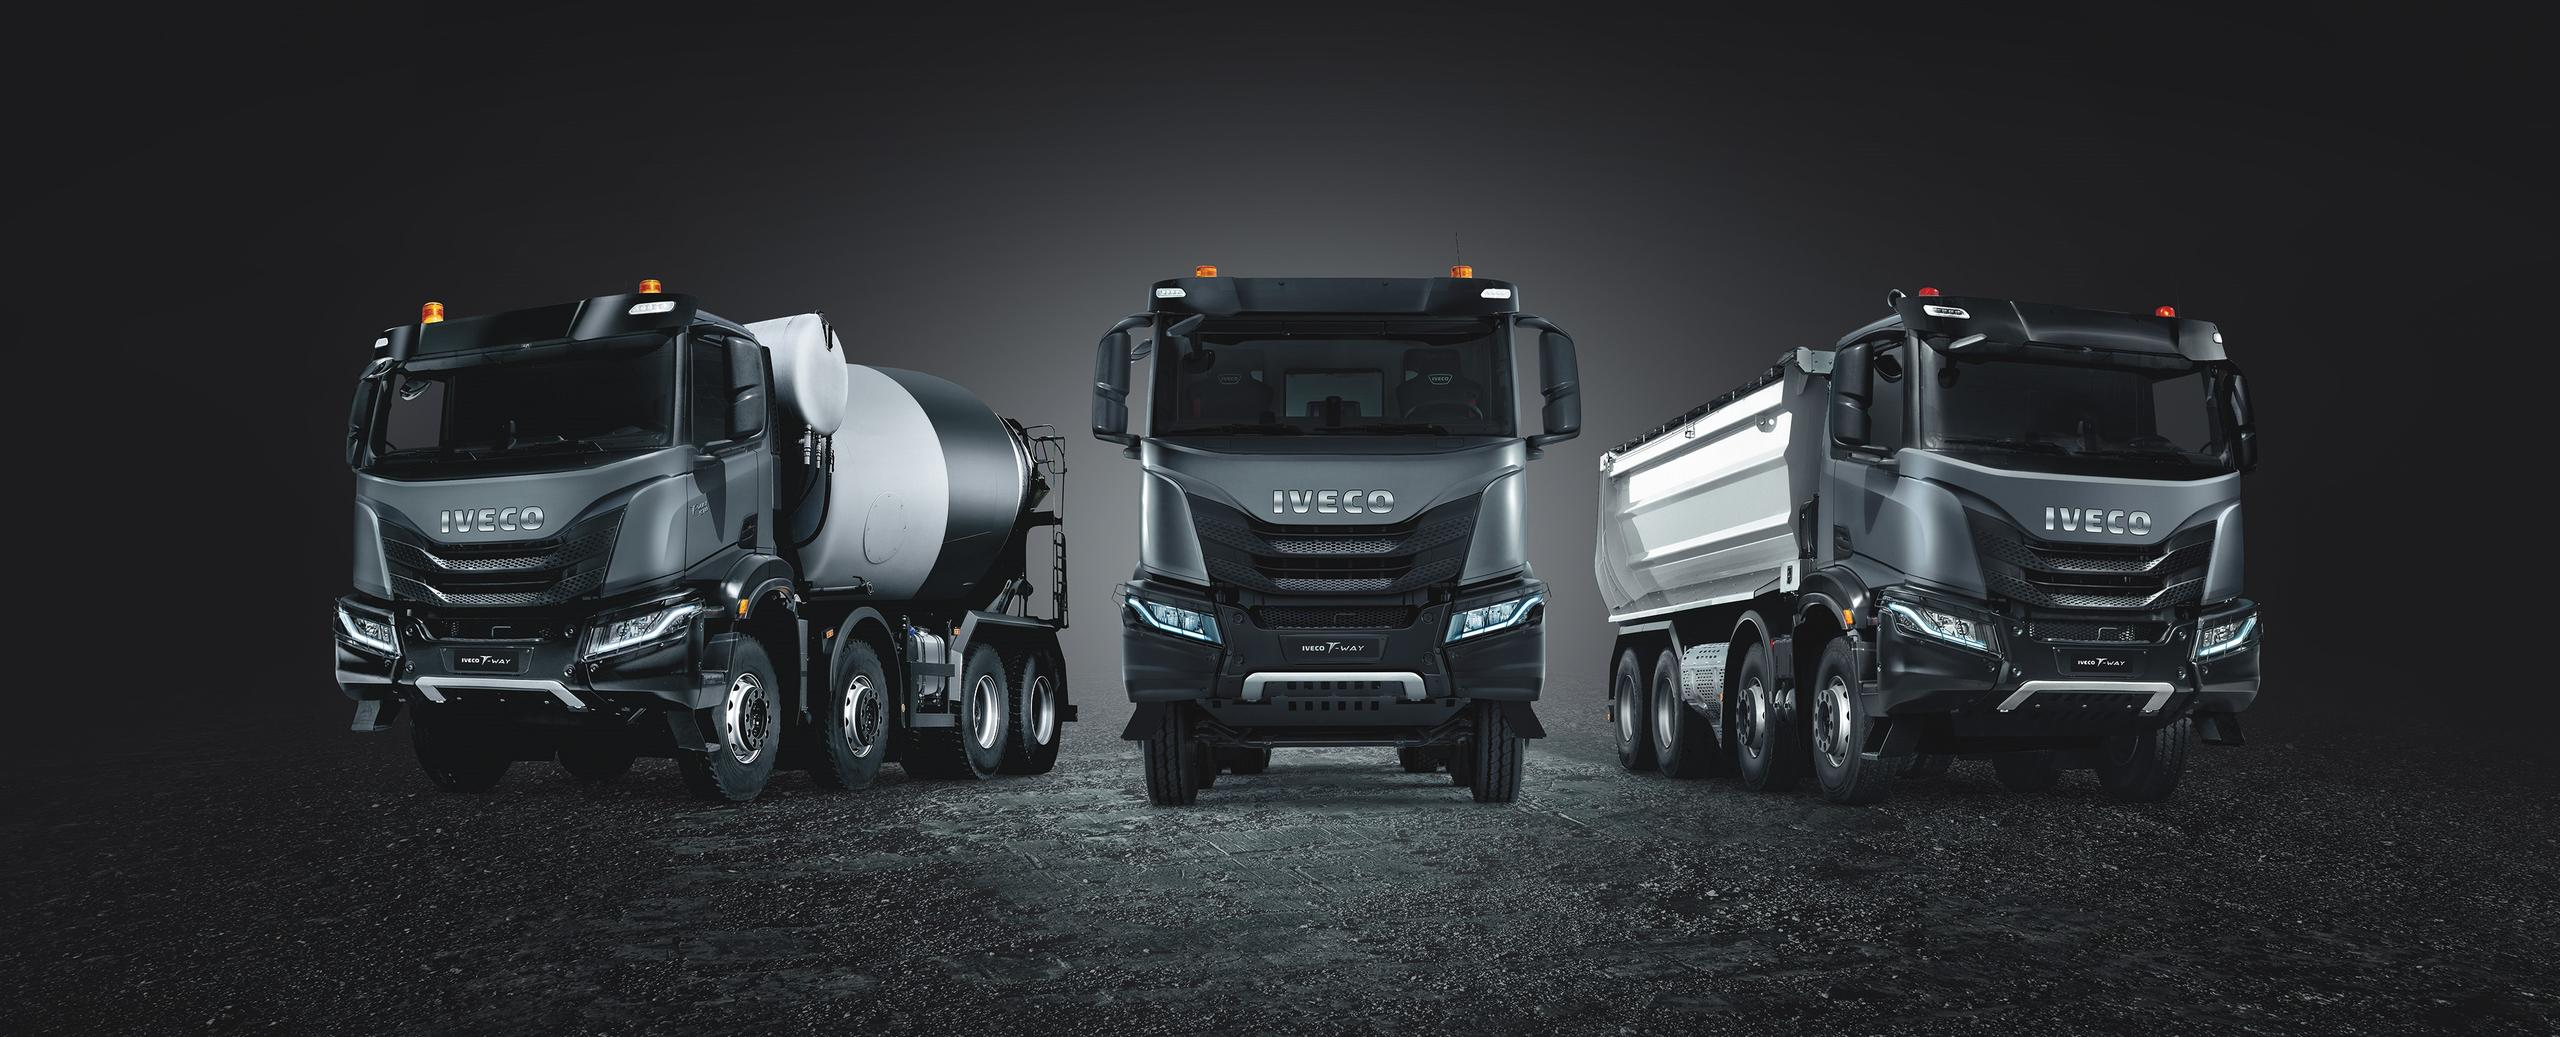 New IVECO T-WAY: the toughest vehicle engineered for the most extreme off-road missions